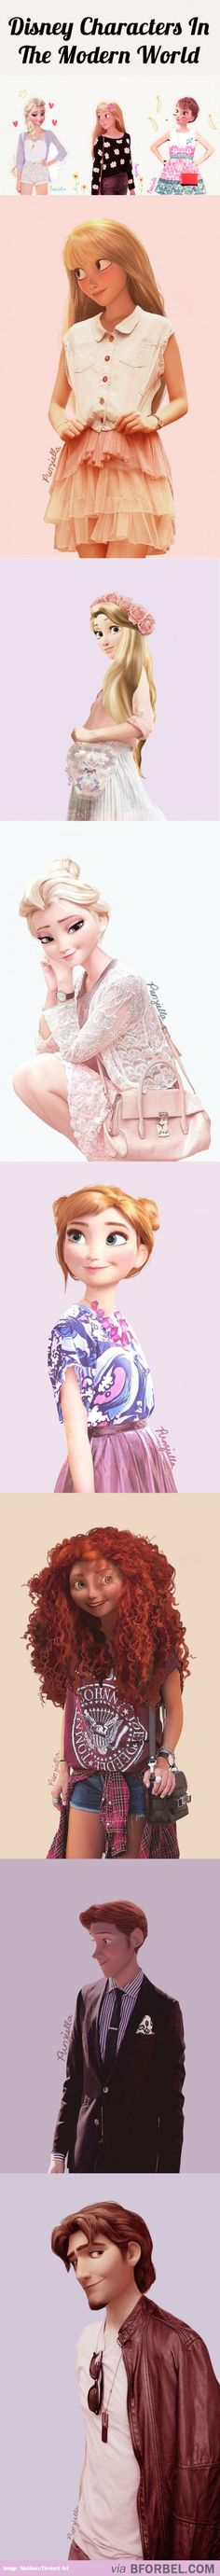 7 Disney Characters Dressed For The Modern World…..